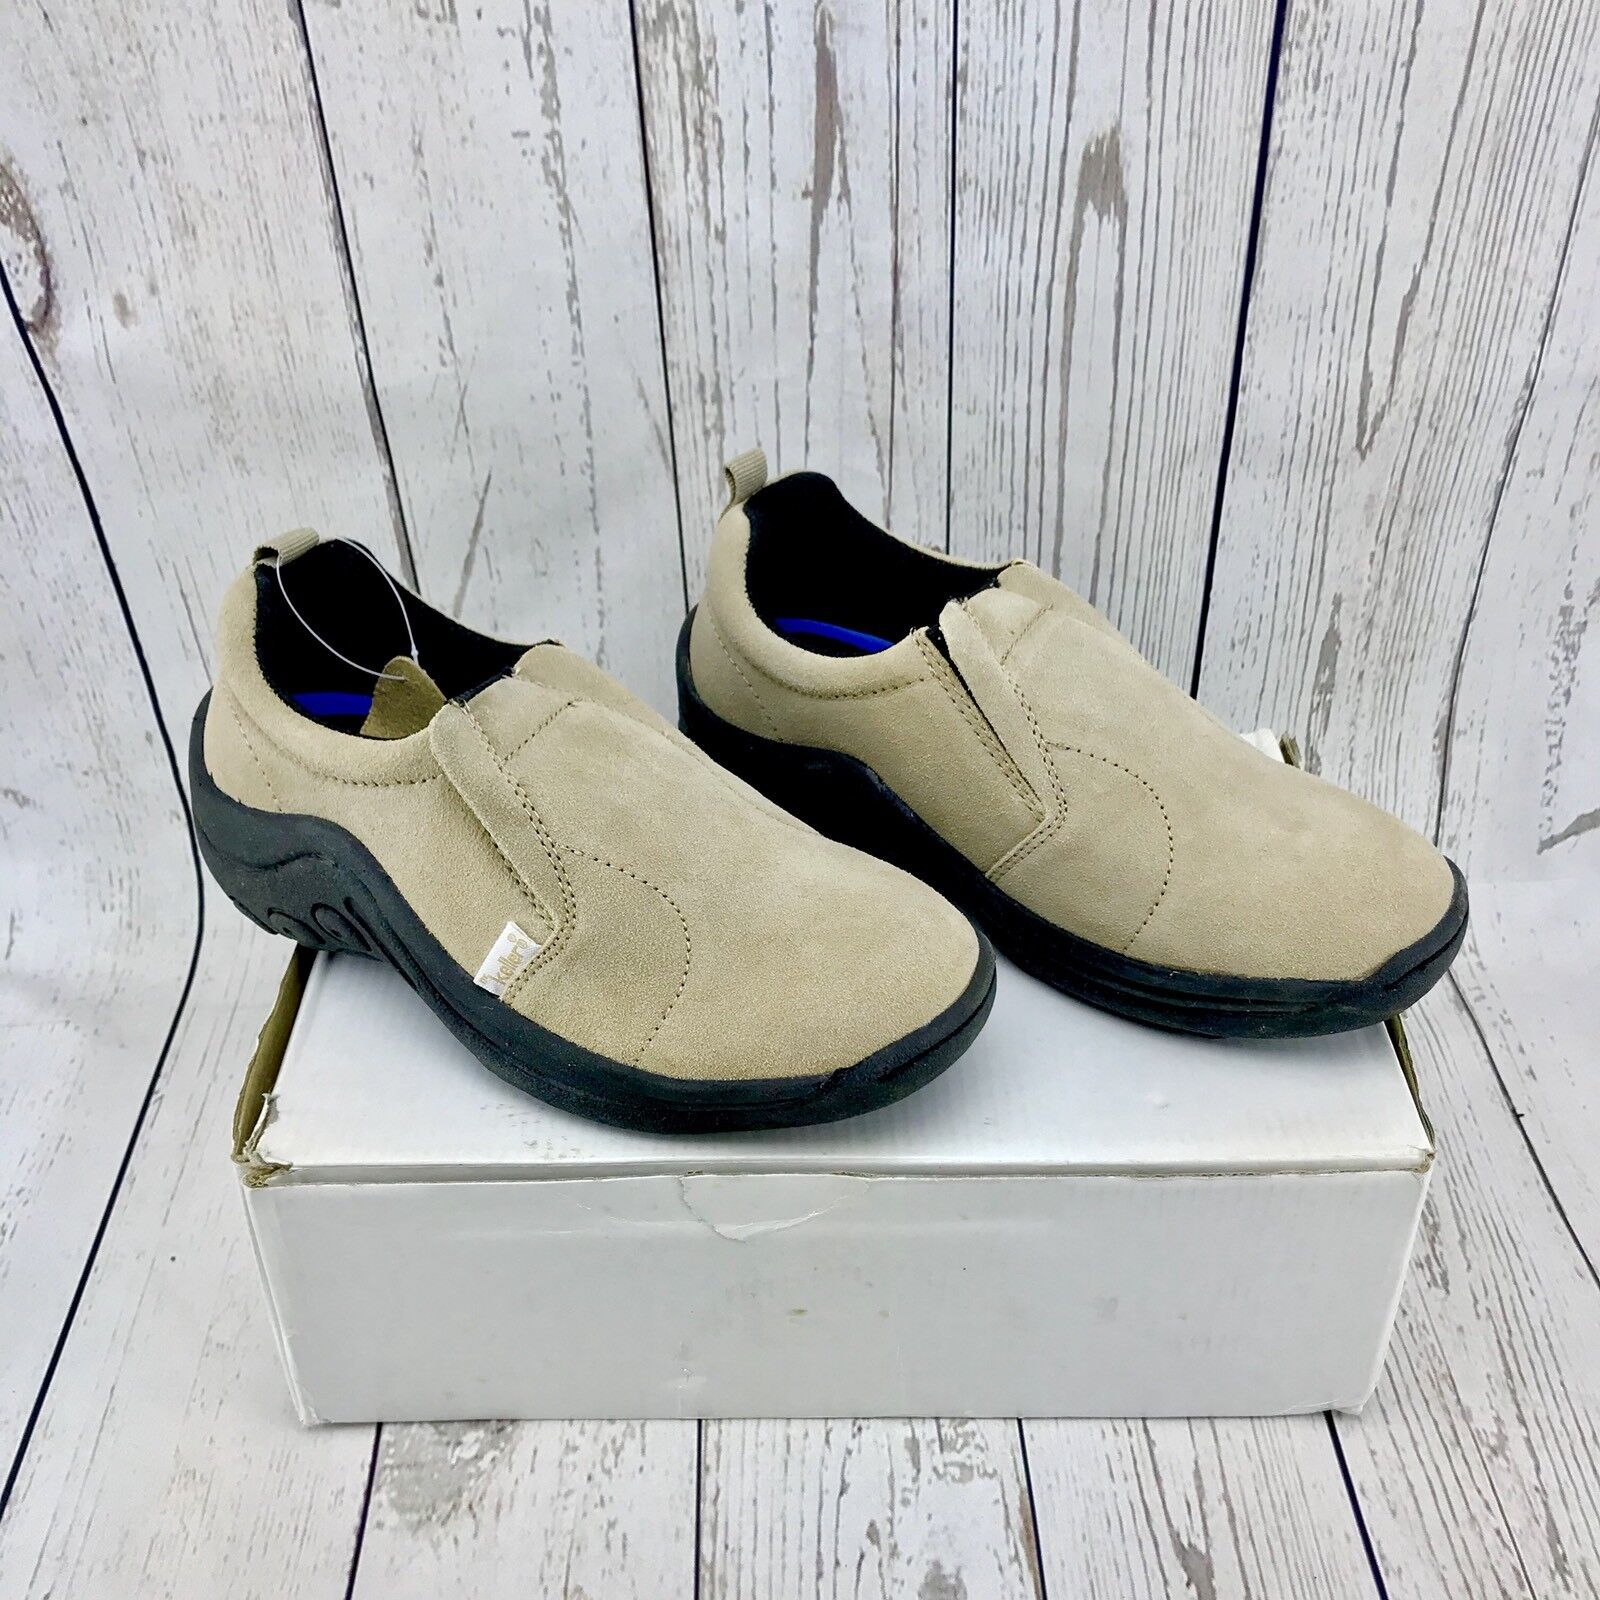 Ladies Dr Keller Suede Leather Beige Slip On shoes Trainers UK 3 BRAND NEW BOXED